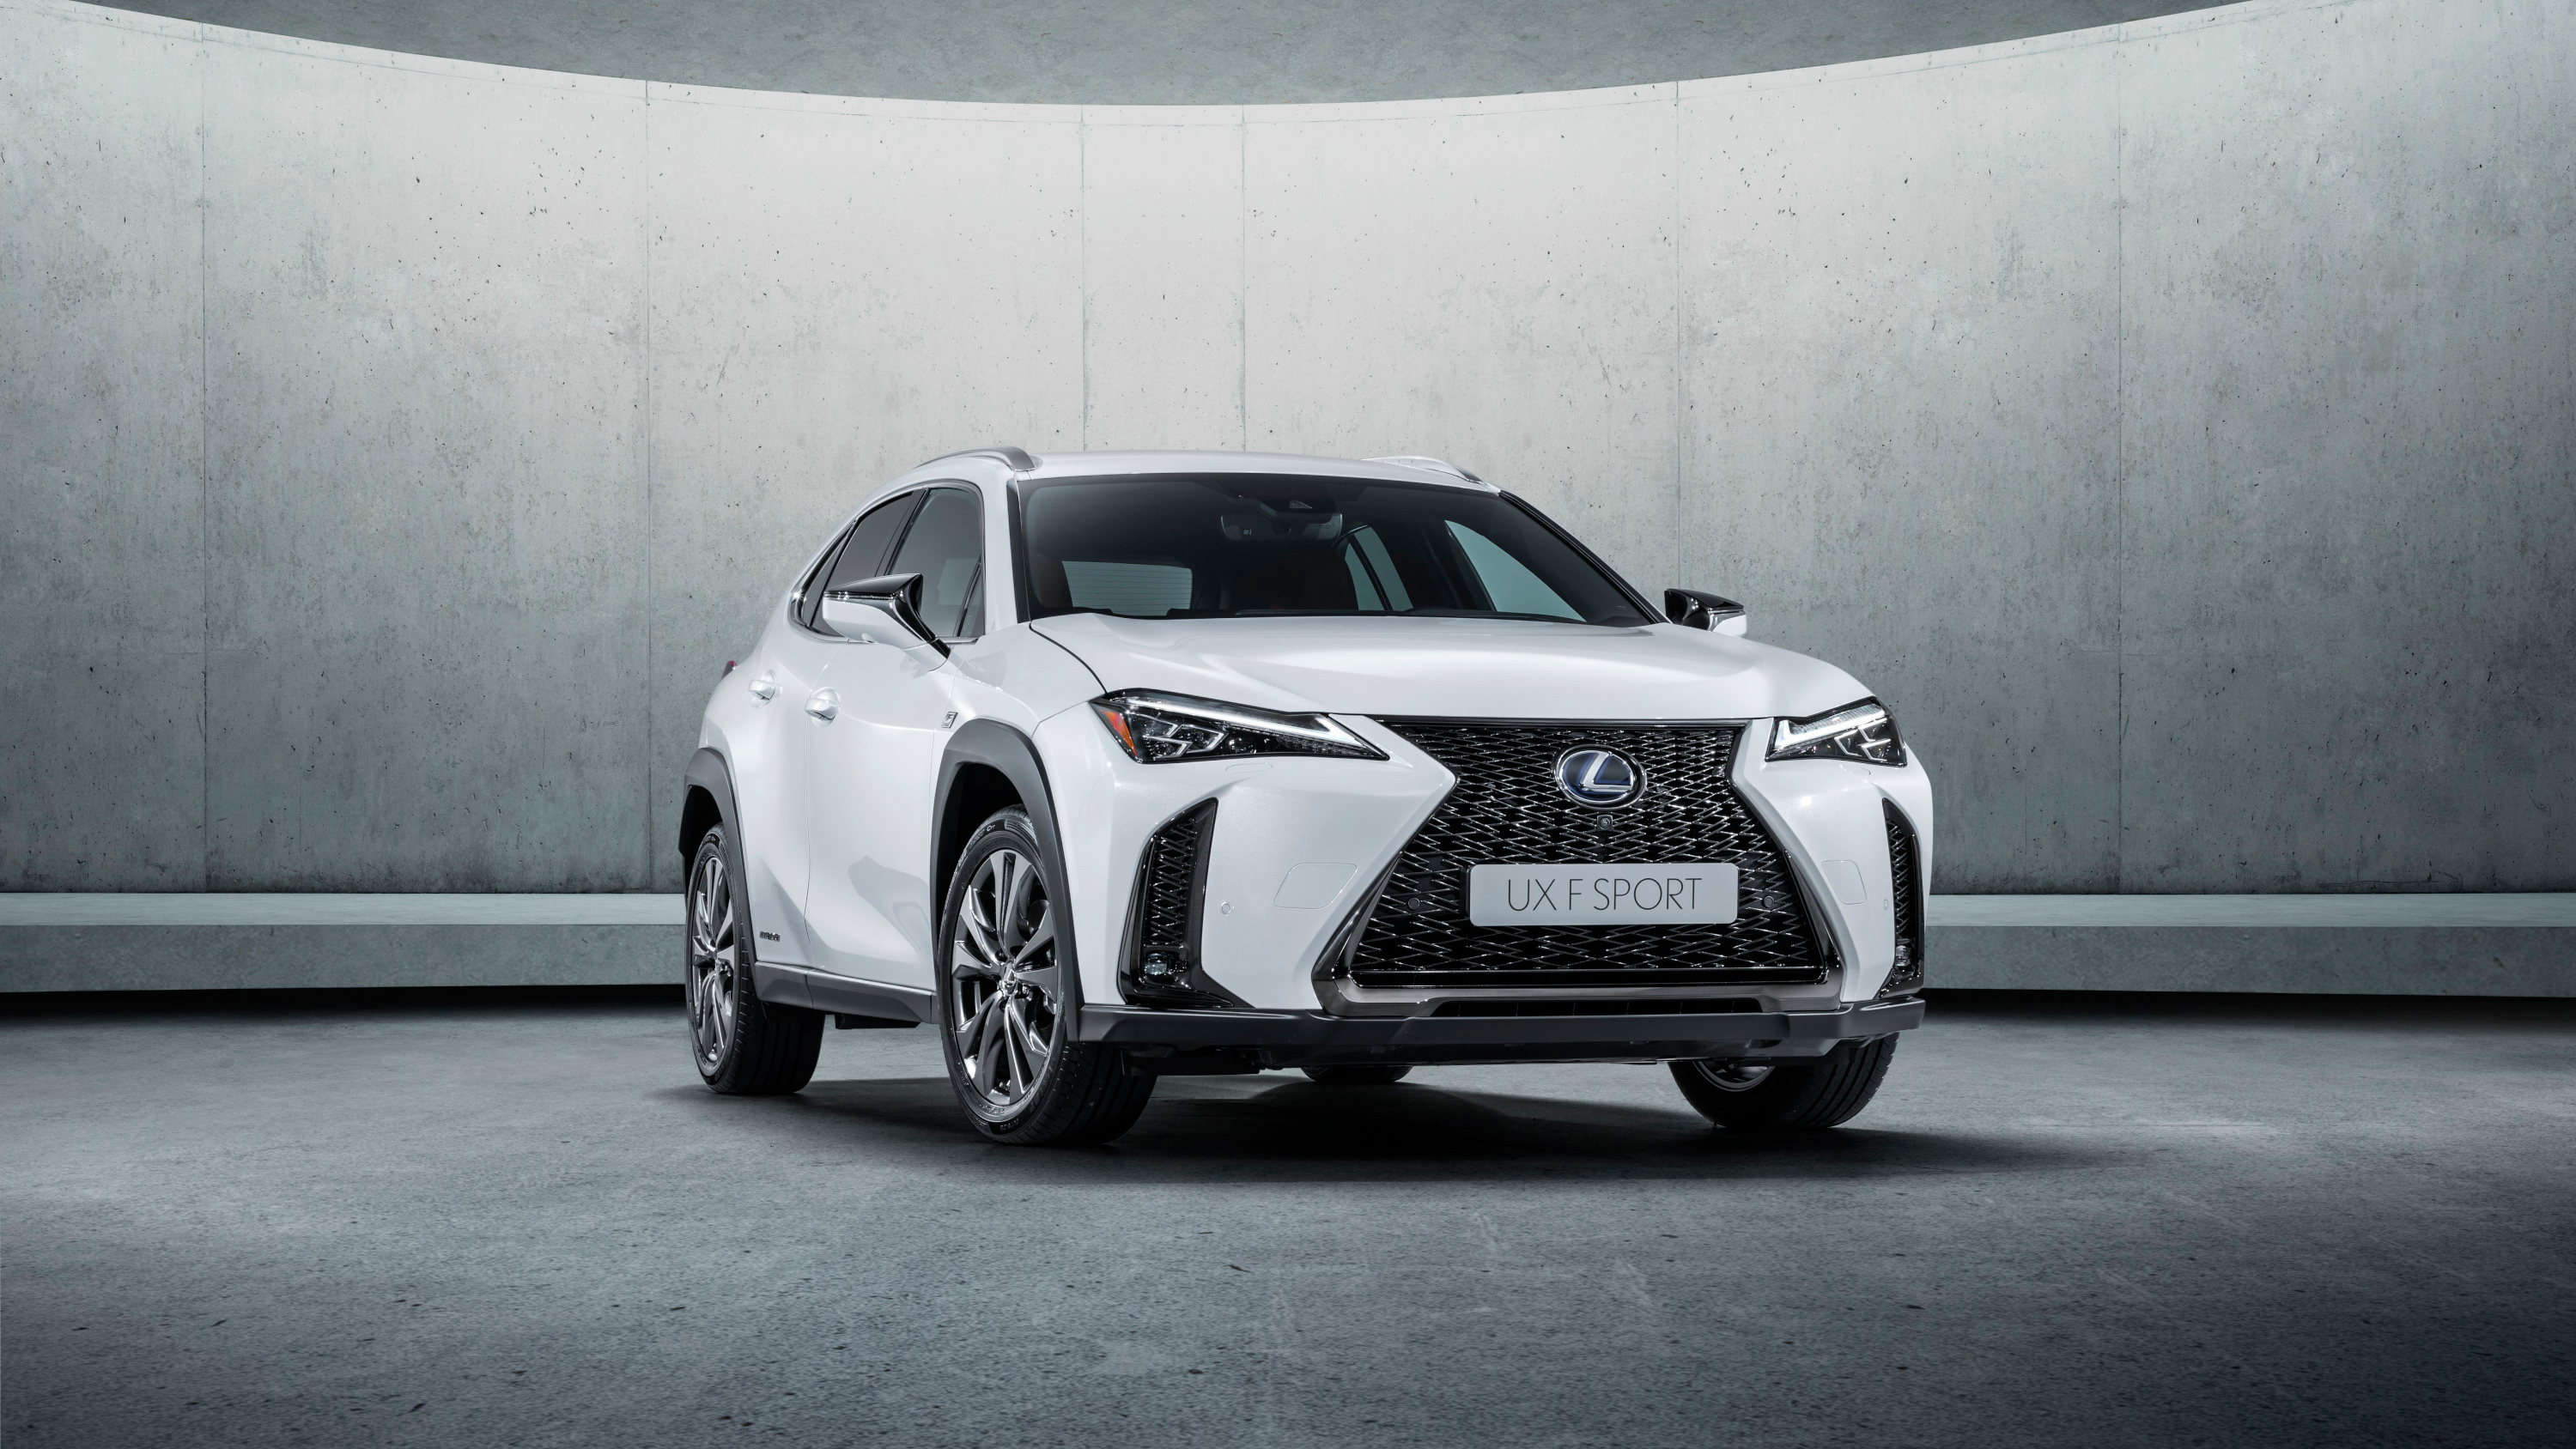 2018 lexus ux 250h f sport 3 wallpaper | hd car wallpapers